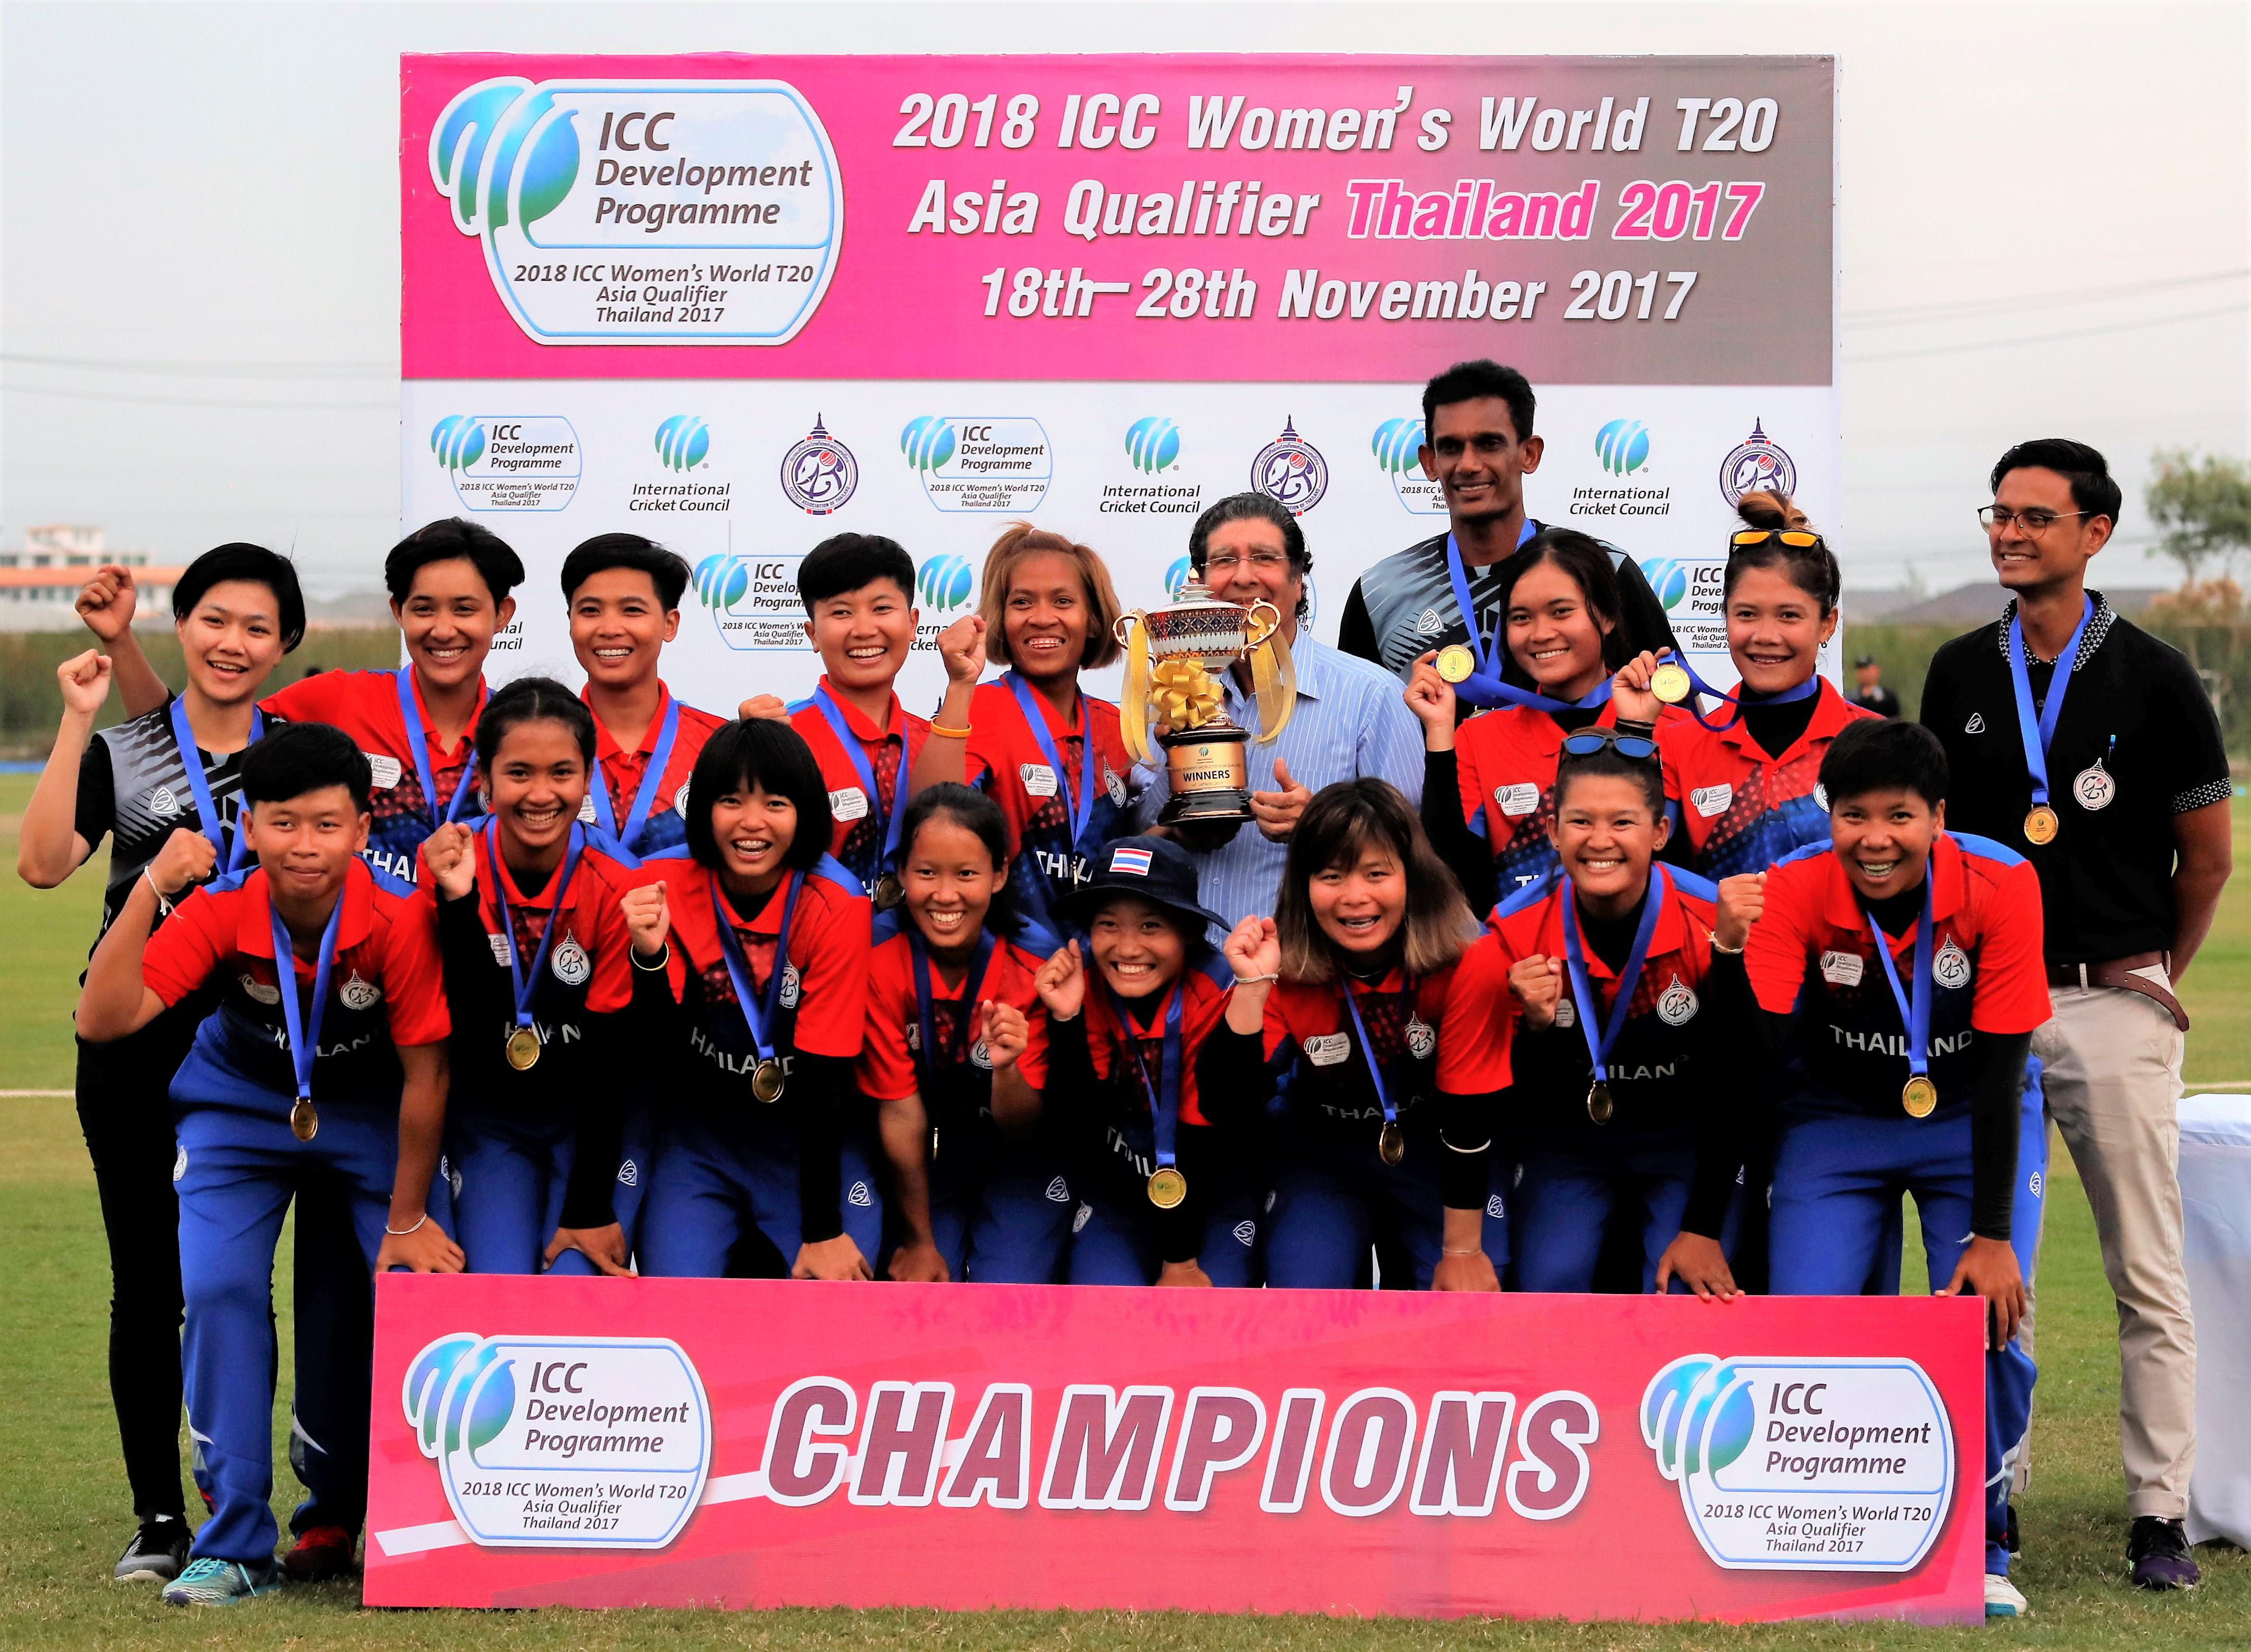 Thailand Women See Off Uae To Win Icc Asia Qualifier